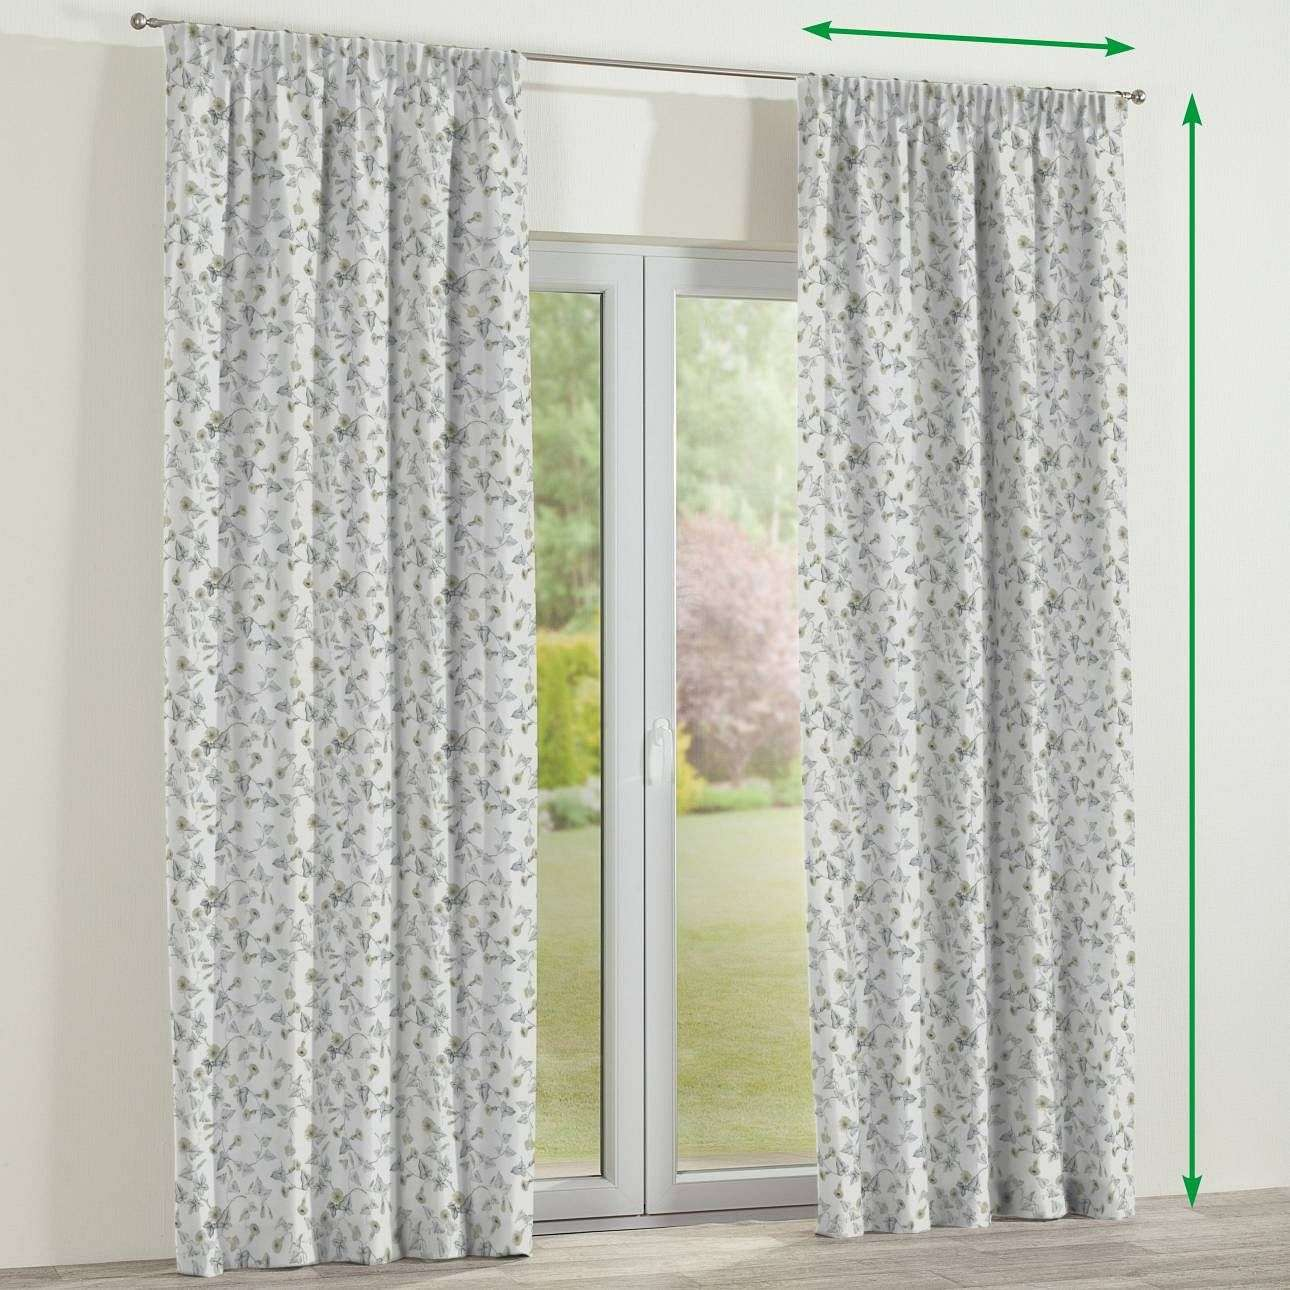 Pencil pleat lined curtains in collection Mirella, fabric: 140-42